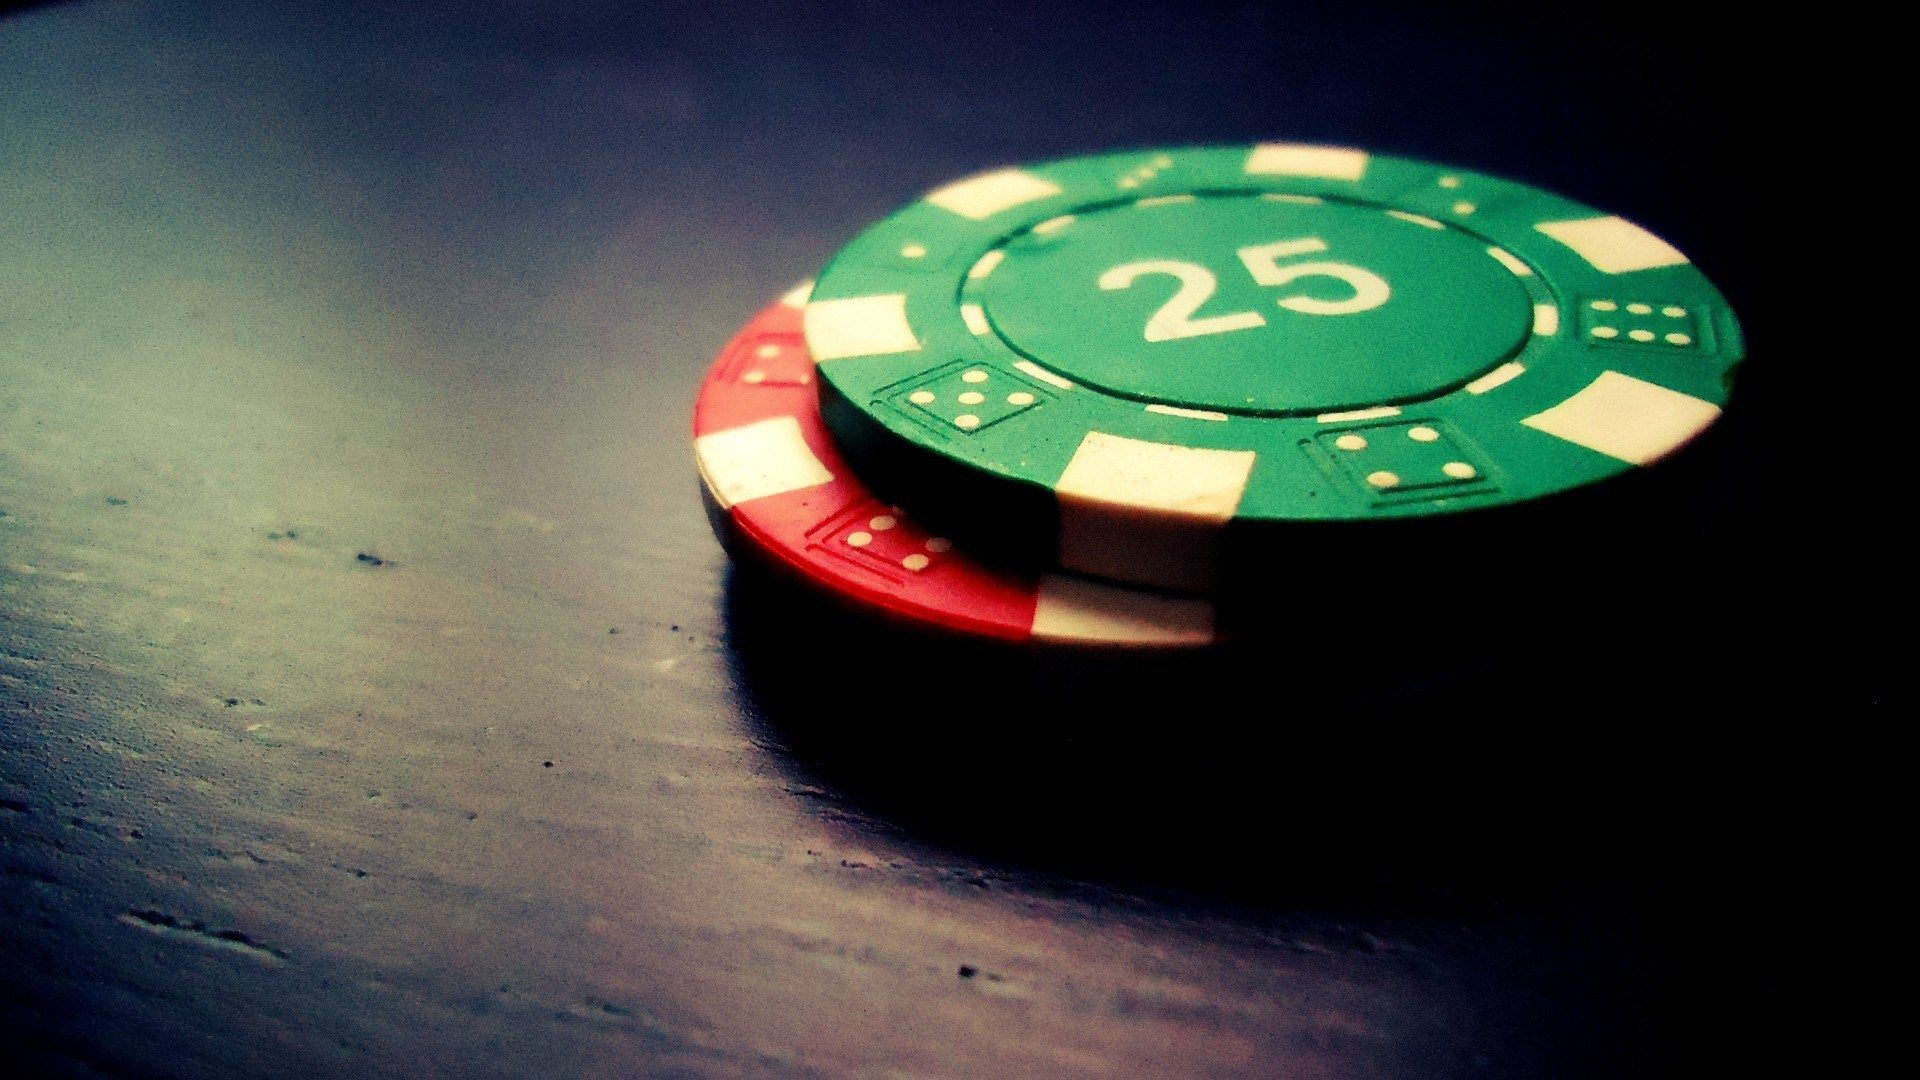 What Strategy Do You Need To Follow For The Joker 123 Gambling Game?